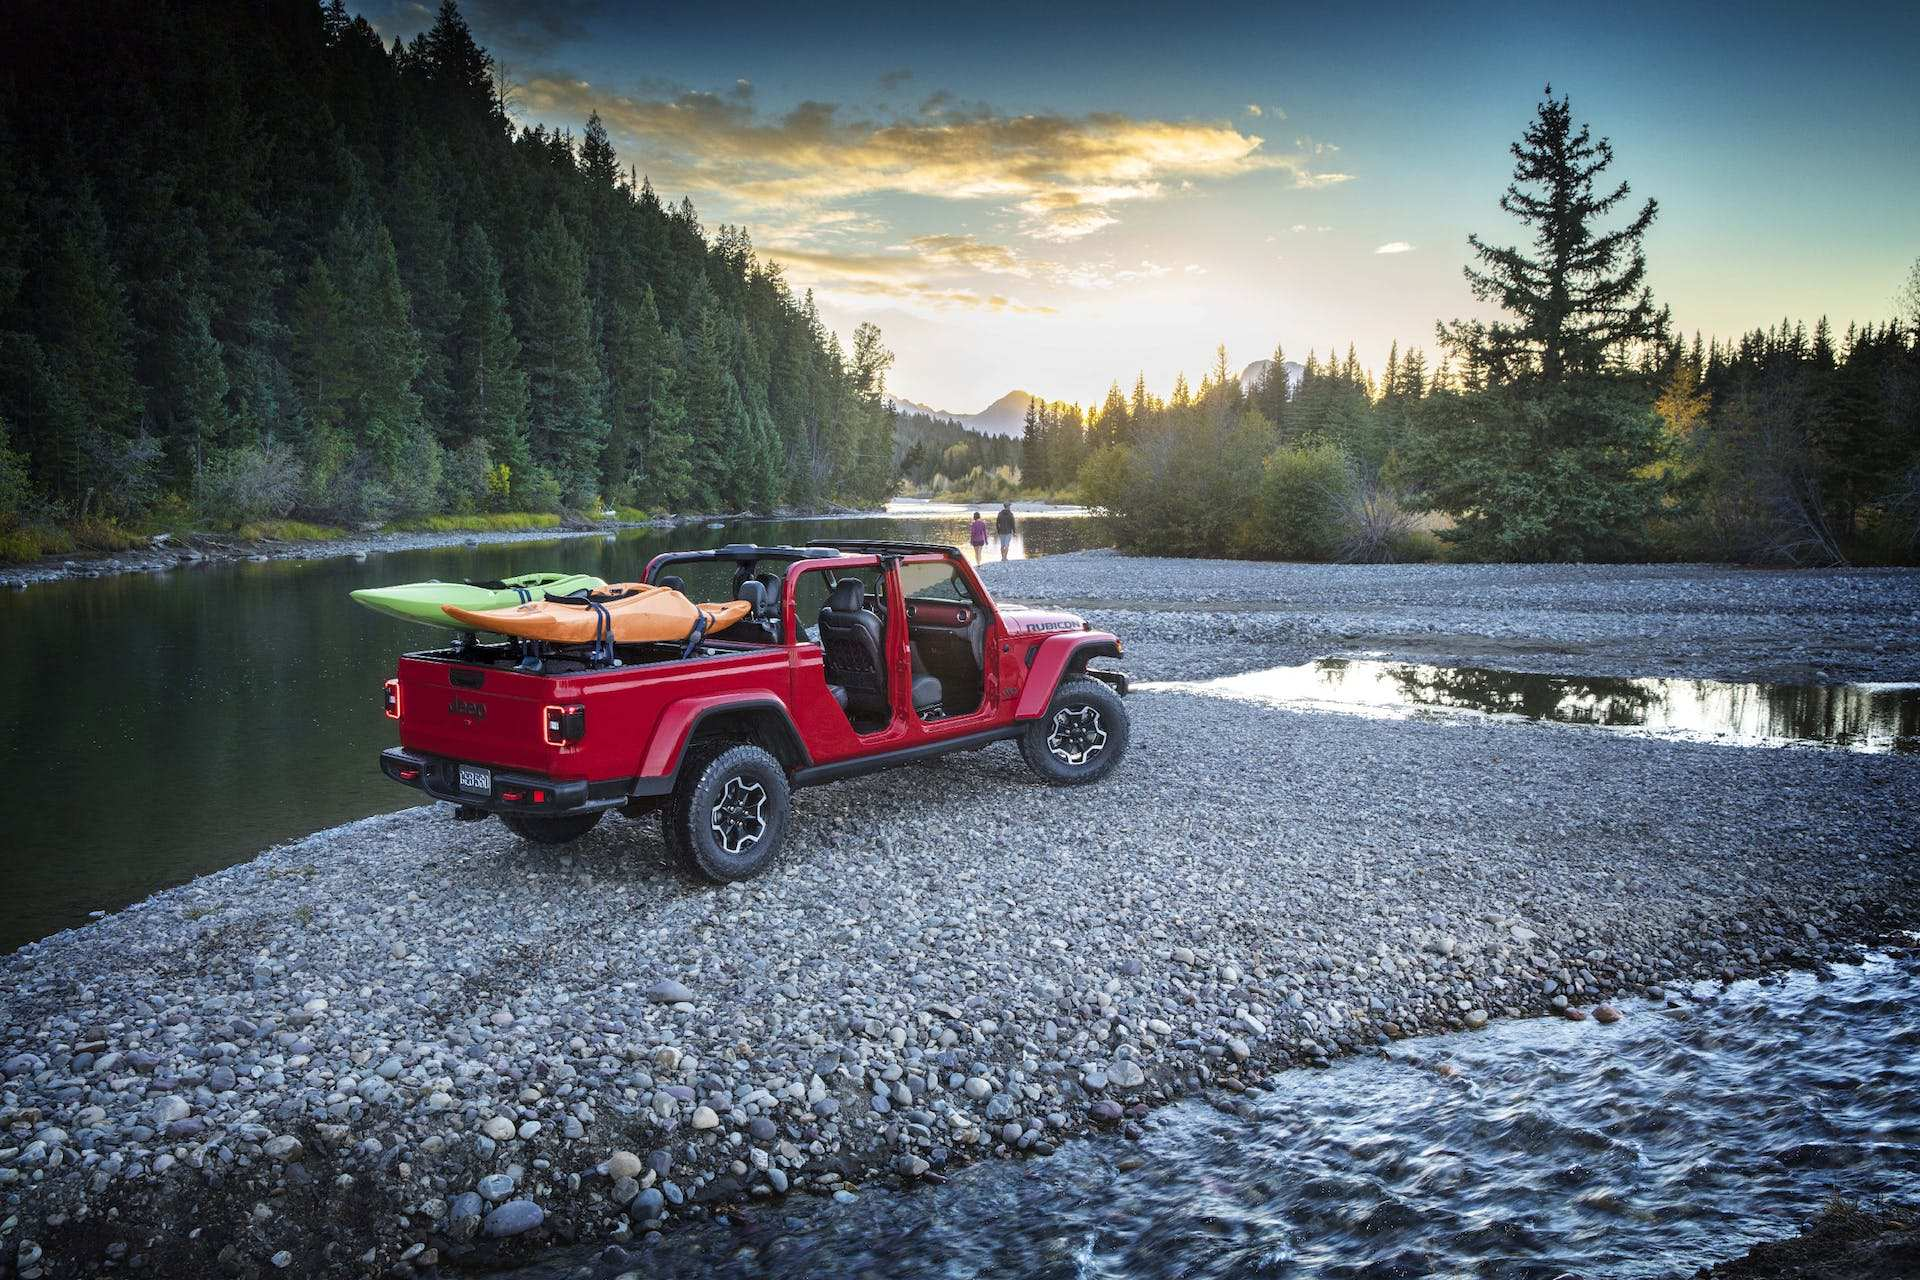 69 New 2020 Jeep Gladiator Availability Date New Concept